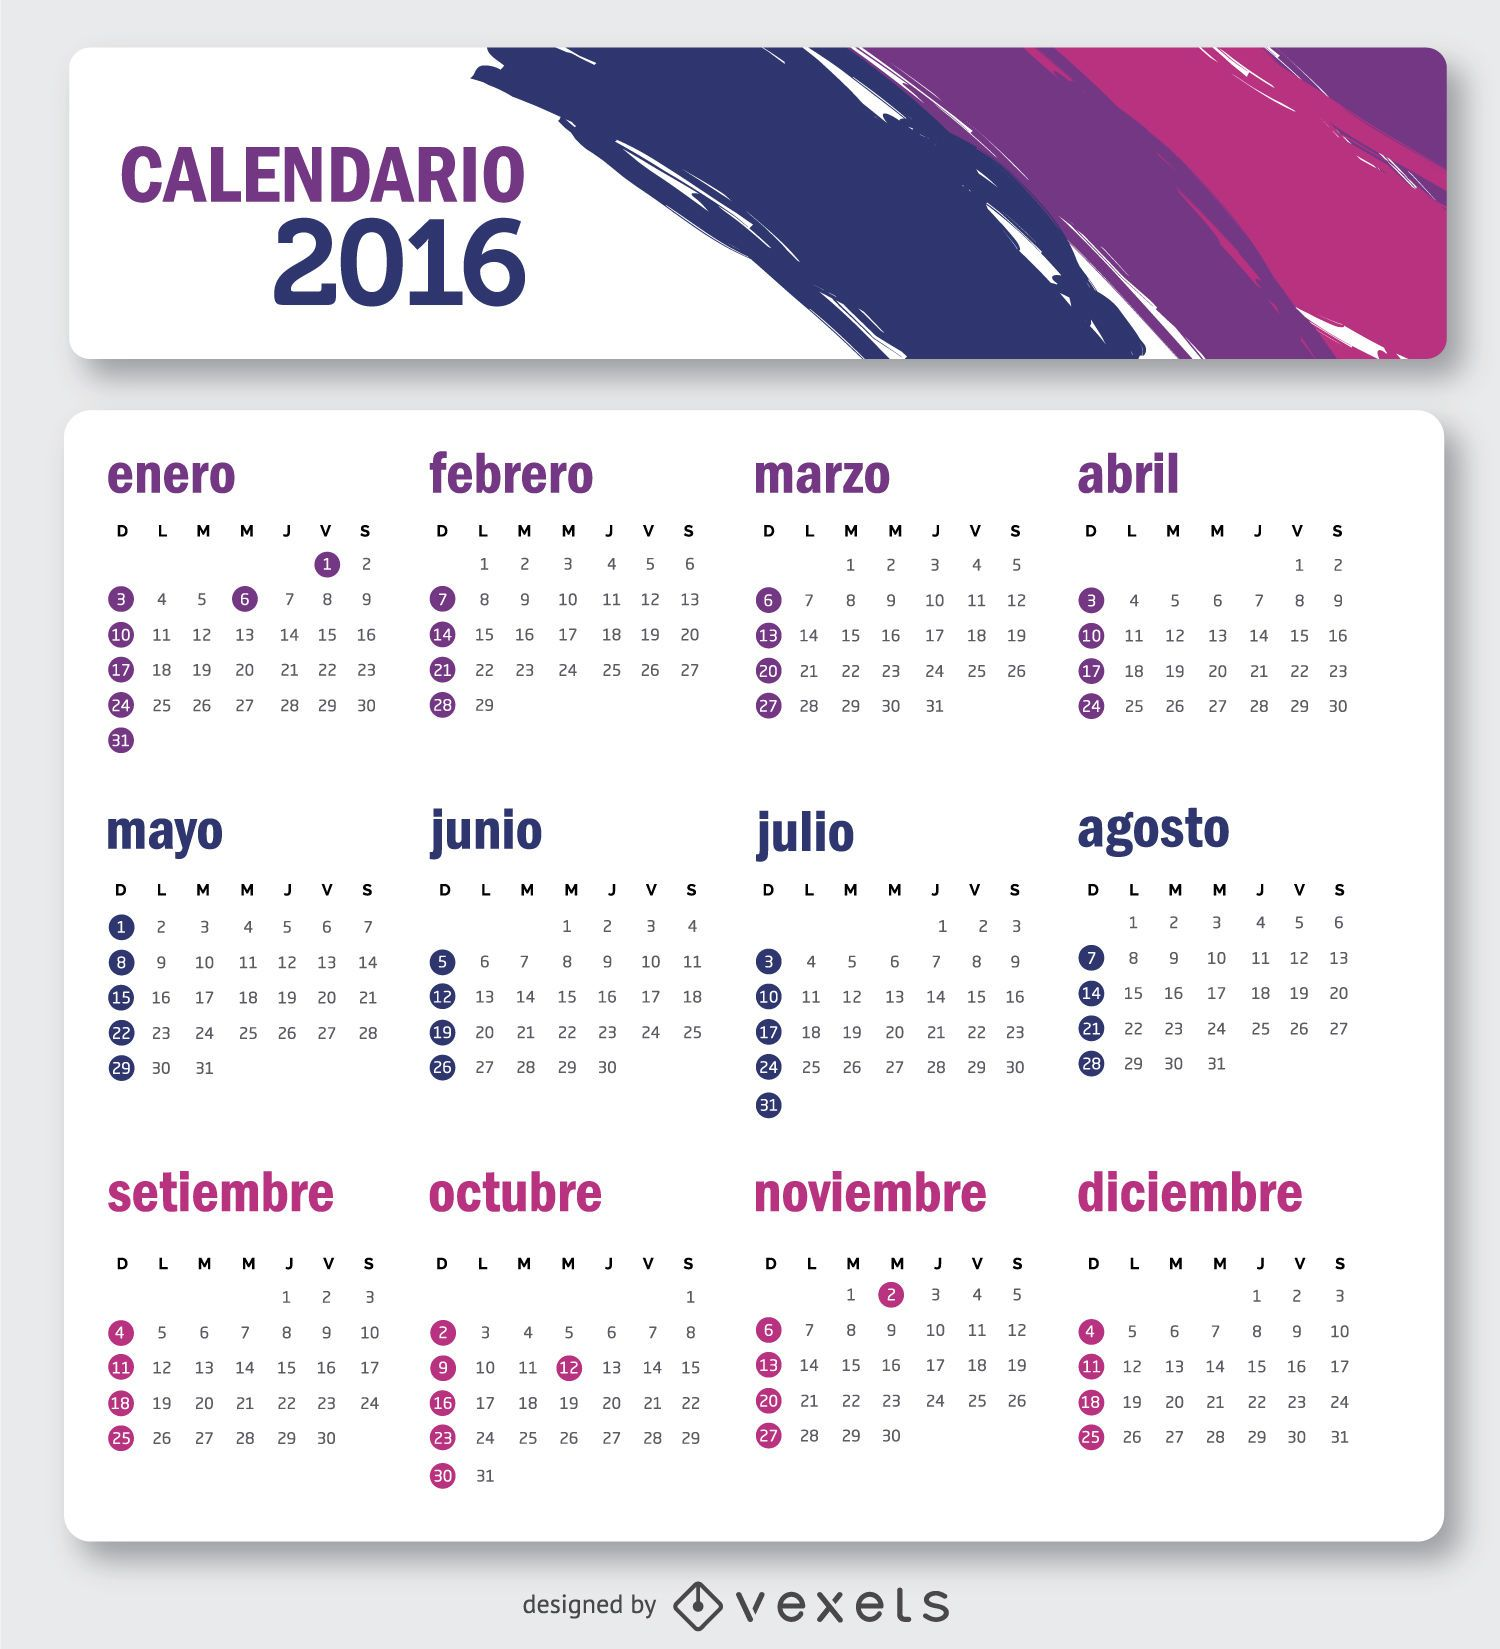 Simple 2016 calendar in Spanish - Vector download